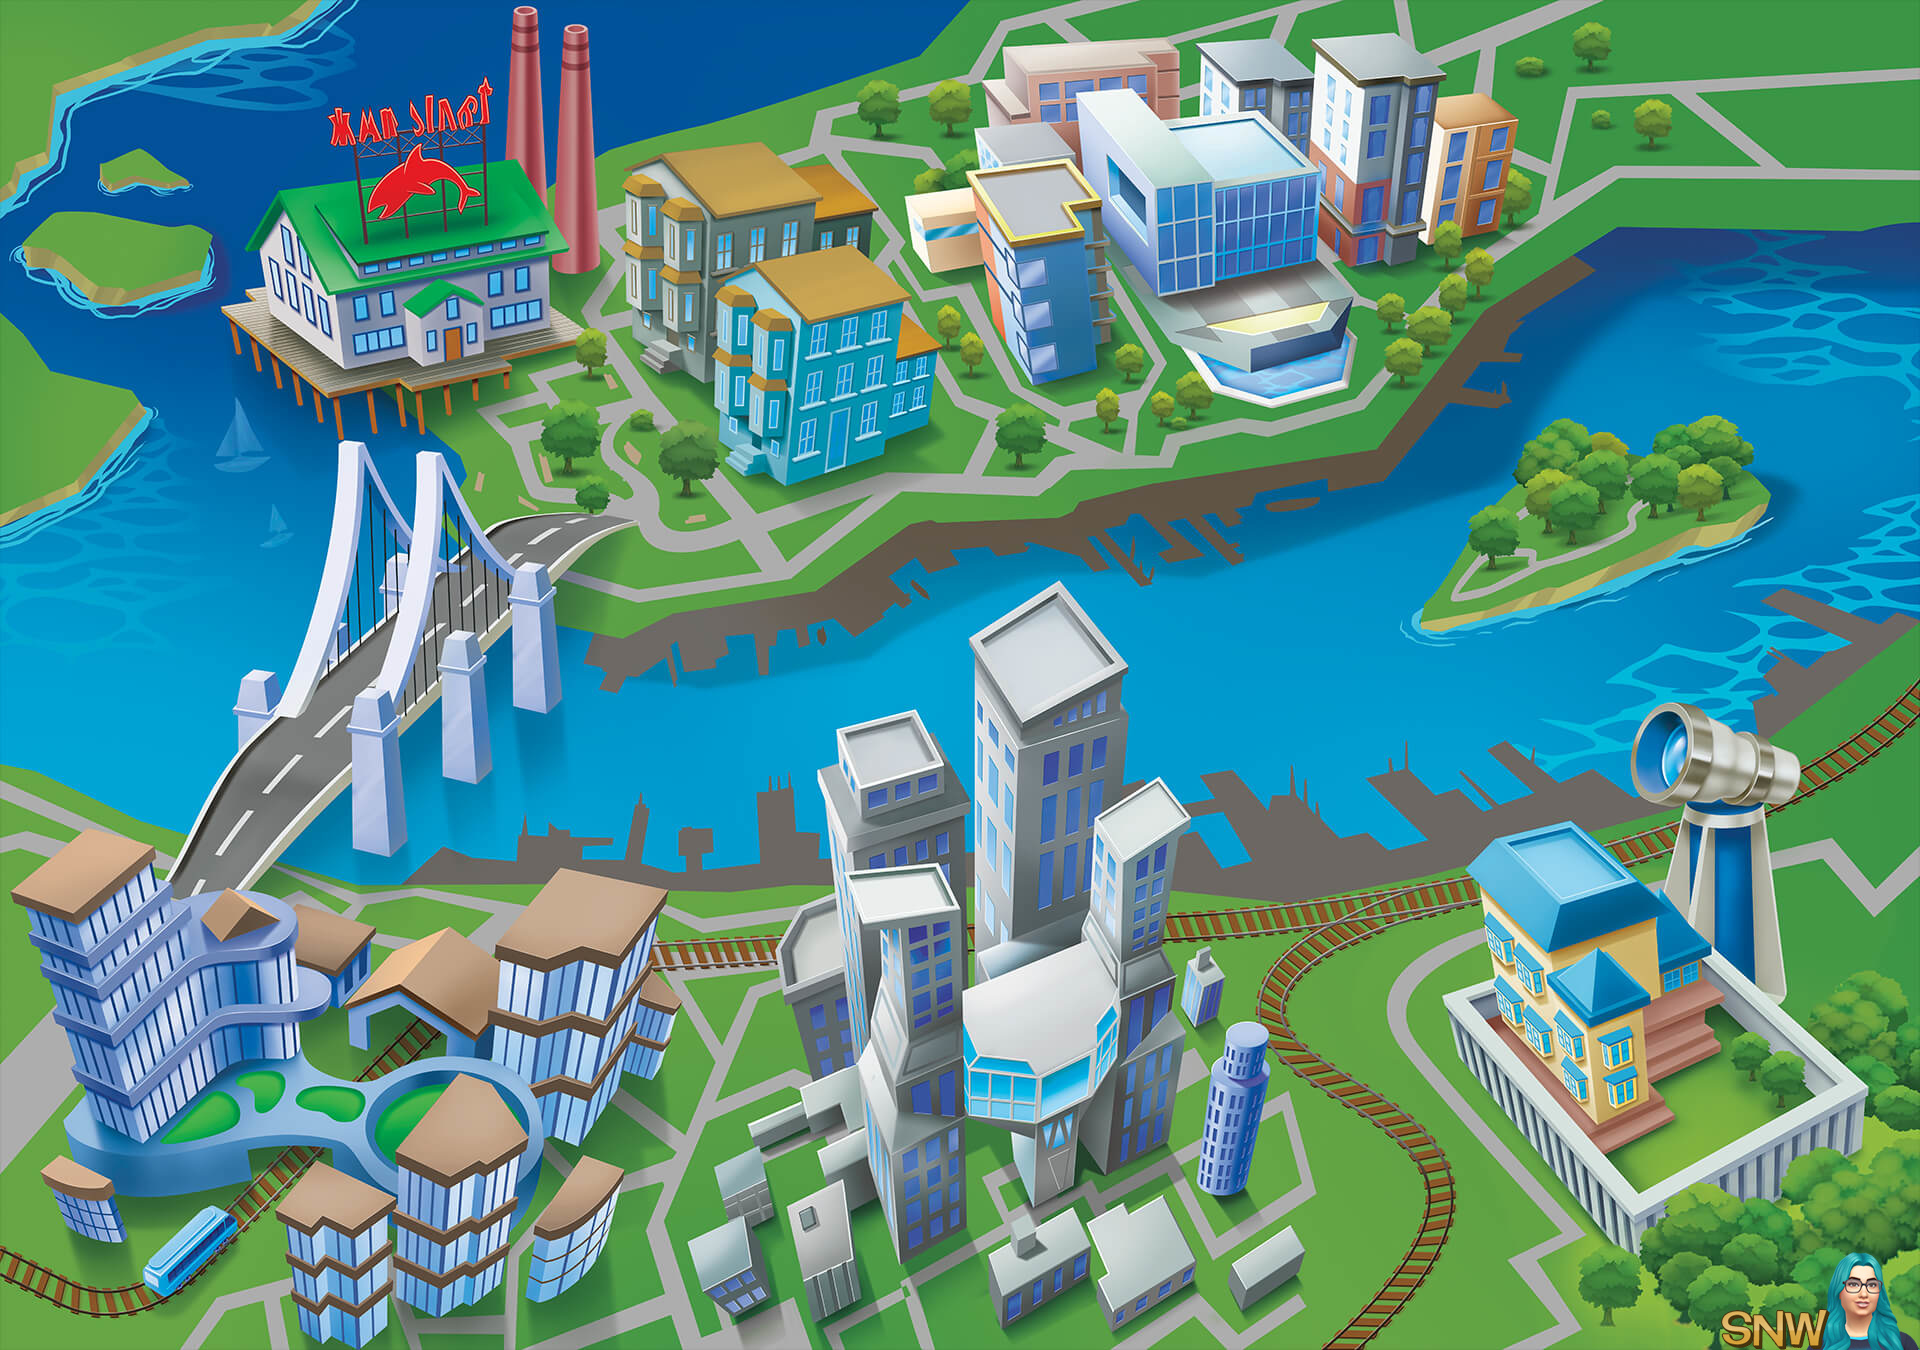 The Sims 4: City Living world overview